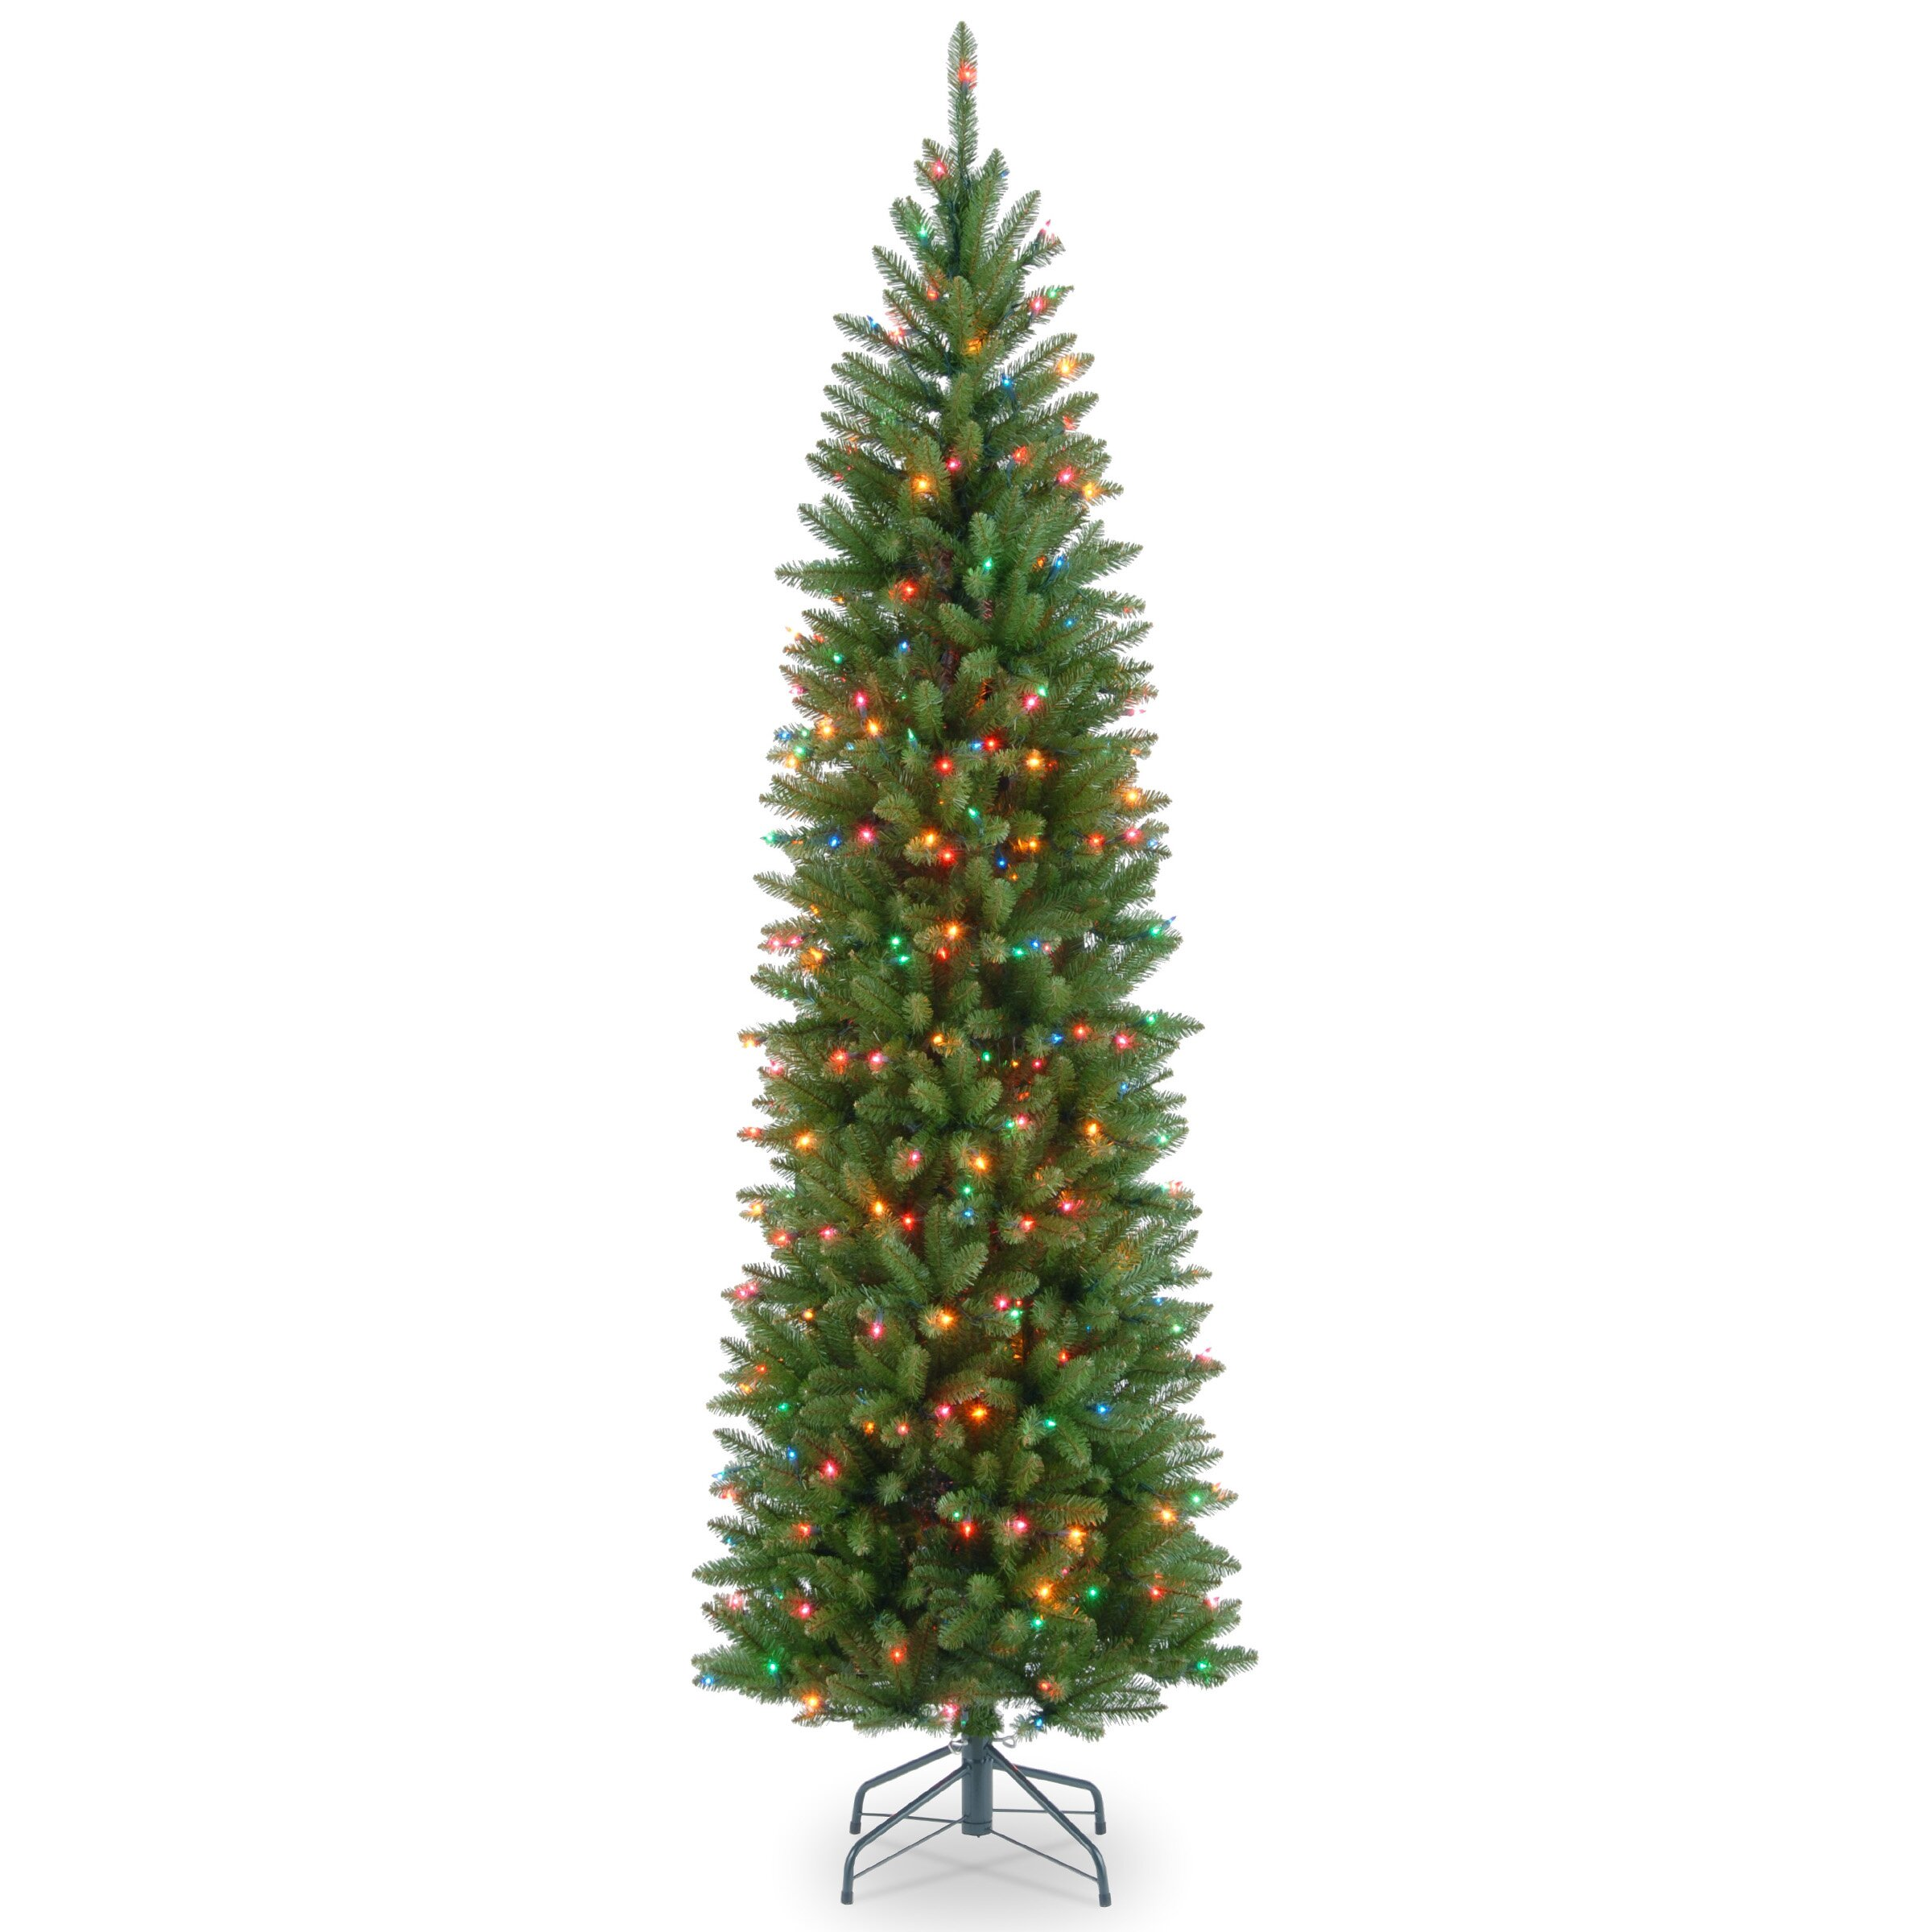 national tree co kingswood 6 5 39 green fir pencil artificial christmas tree with multi colored. Black Bedroom Furniture Sets. Home Design Ideas